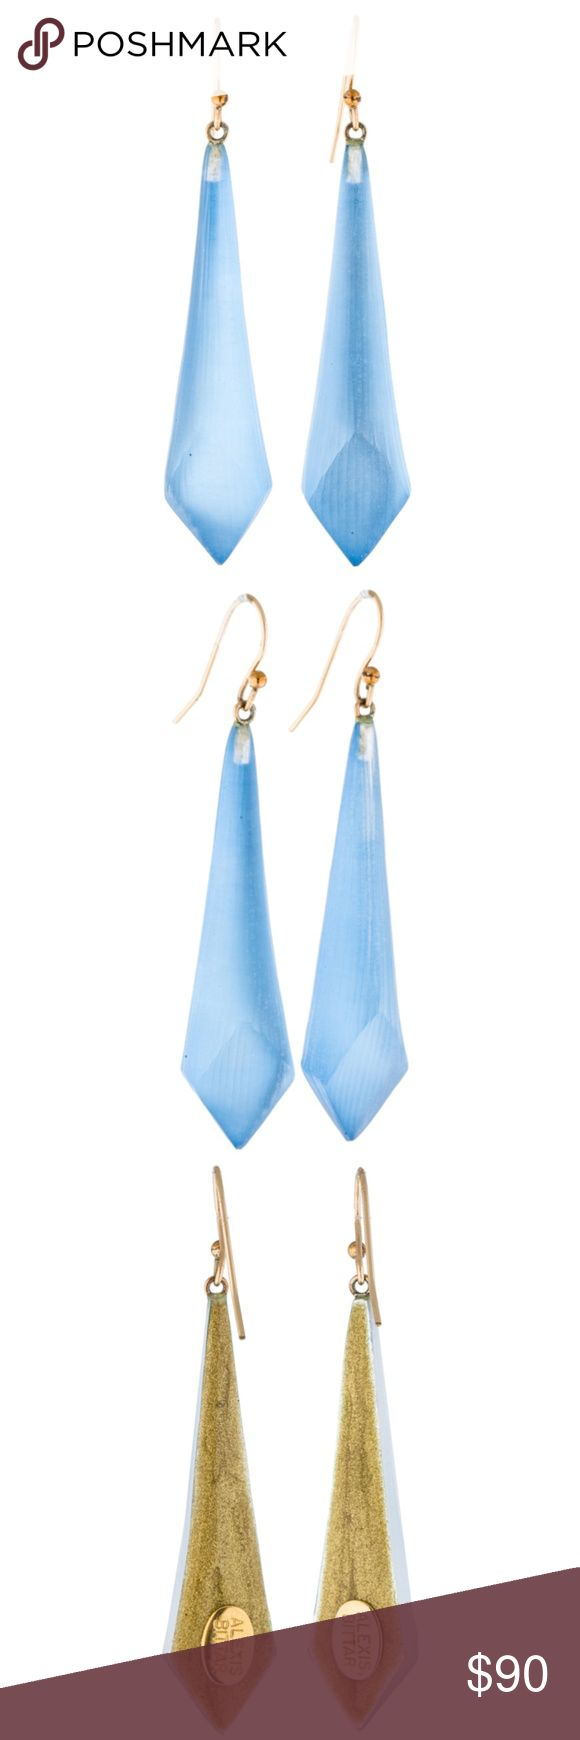 """Alexis Bittar Lucite Blue Drop Earrings These Alexis Bittar lucite drop earrings are blue with gold-tone french hook closures and gold-tone backing for lucite drop. Reflects light nicely and is great for any outfit!  Approximate Measurements:  --Full Height (drop from earlobe) = 2.50""""  --Blue Lucite Height = 2.00"""" --Length (at thickest part near bottom) = 0.50"""" --Width (at thickest part near bottom) = 0.25"""" Alexis Bittar Jewelry Earrings"""